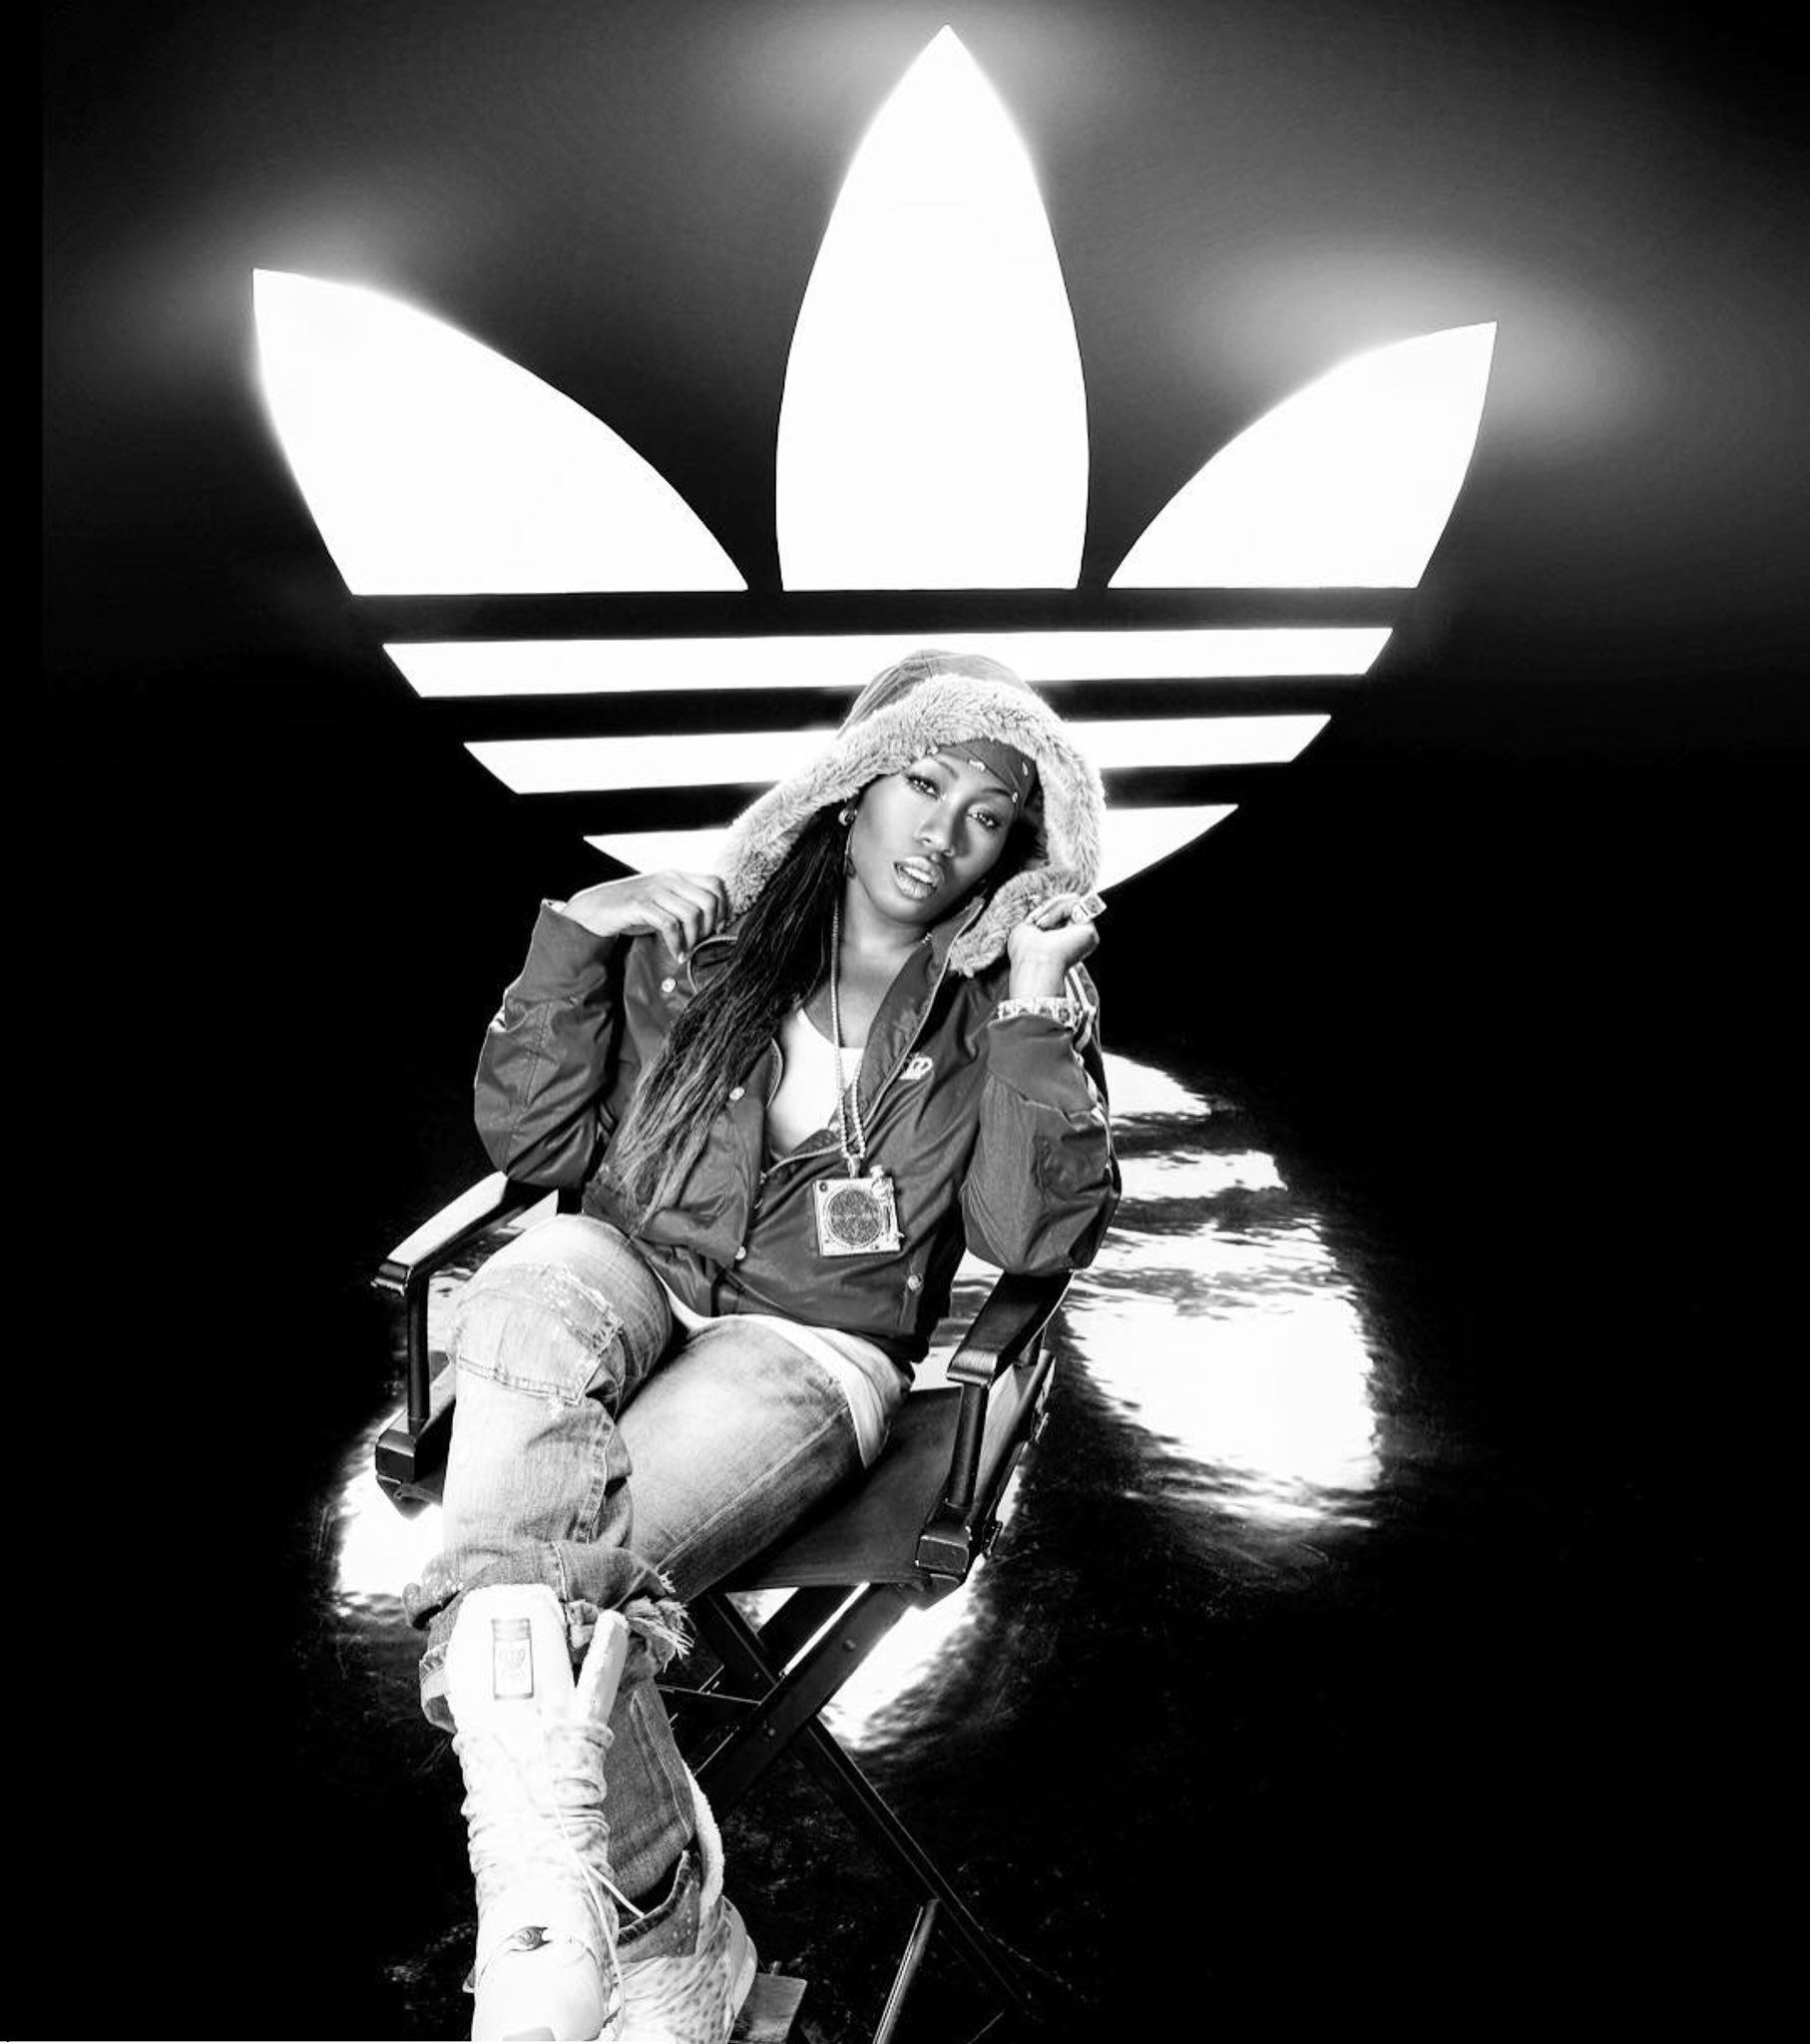 Throwback! Ayyyyye y'all know my @adidasoriginals was the freshest boots! Kicks jackets������ bring em back! https://t.co/7s73AUVL8e